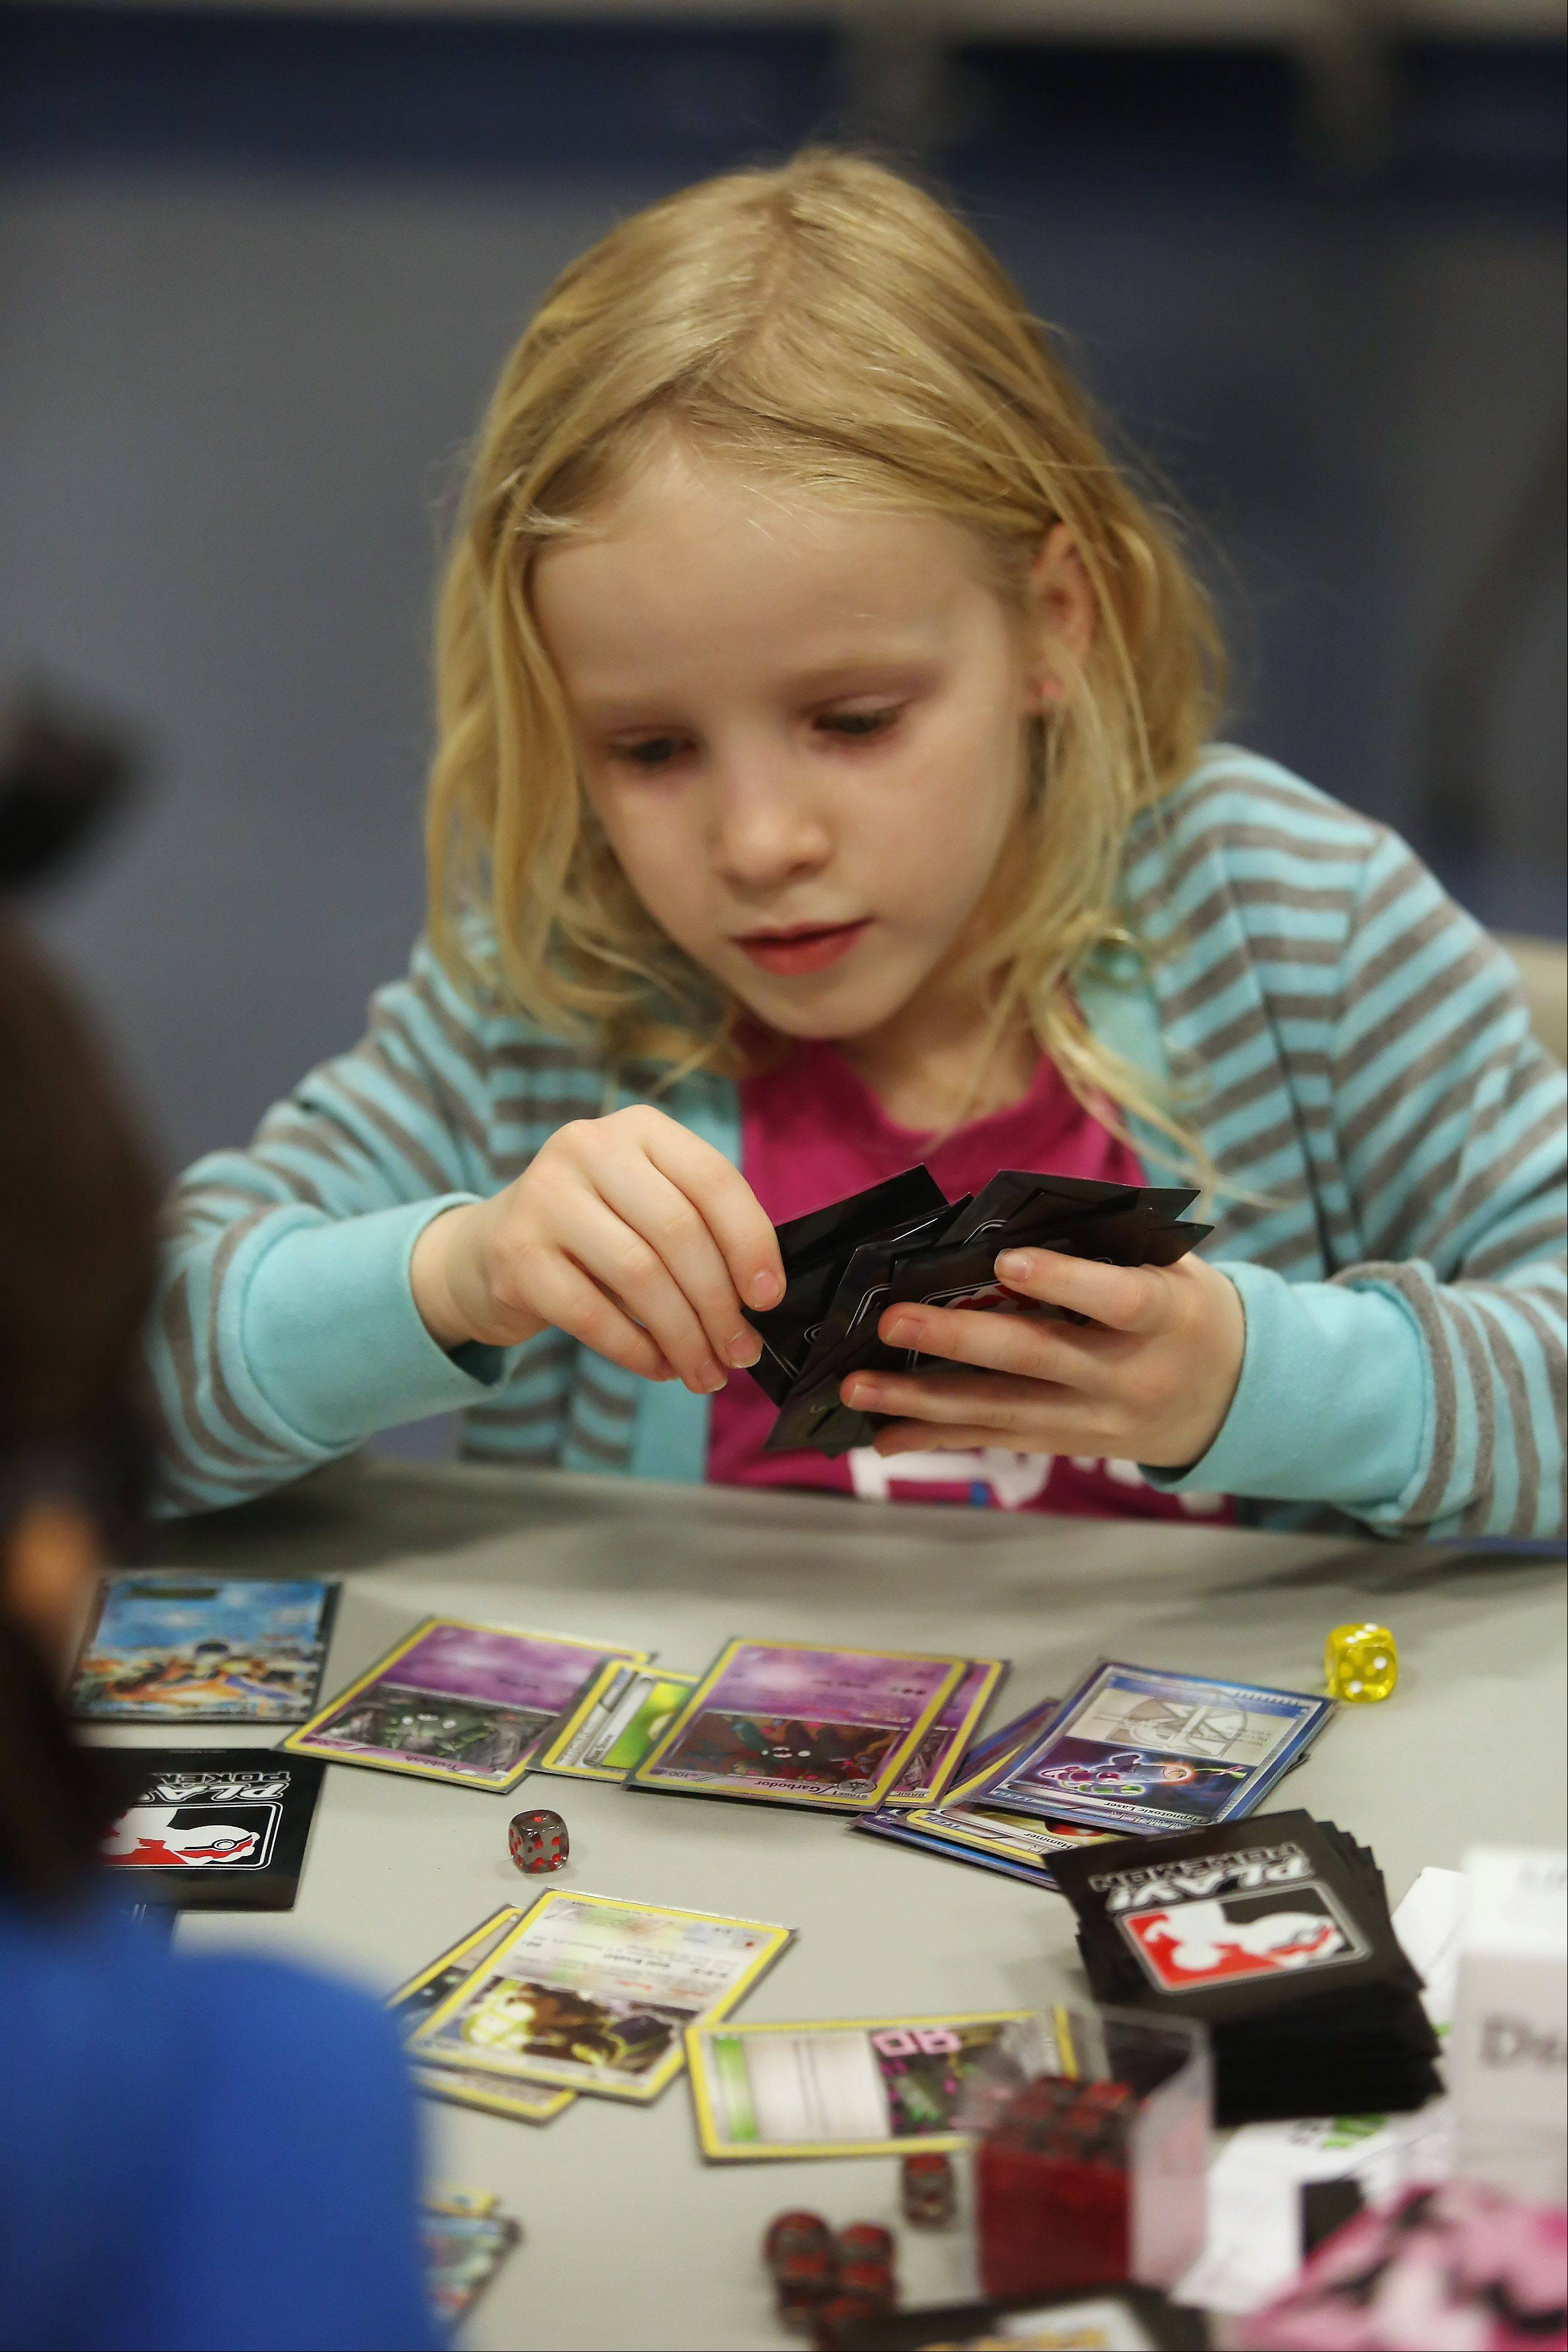 Grace Ours, 7, of Naperville plays her cards during the Pokemon Trading Card Game City Championships at the Sciences and Arts Academy in Des Plaines on Sunday. The tournament attracted 89 participants from all over the Midwest, including St. Louis and Madison, Wis. Players from three age divisions competed to earn points toward a potential invitation to the 2014 Pokemon World Championships in Washington, D.C., next summer.